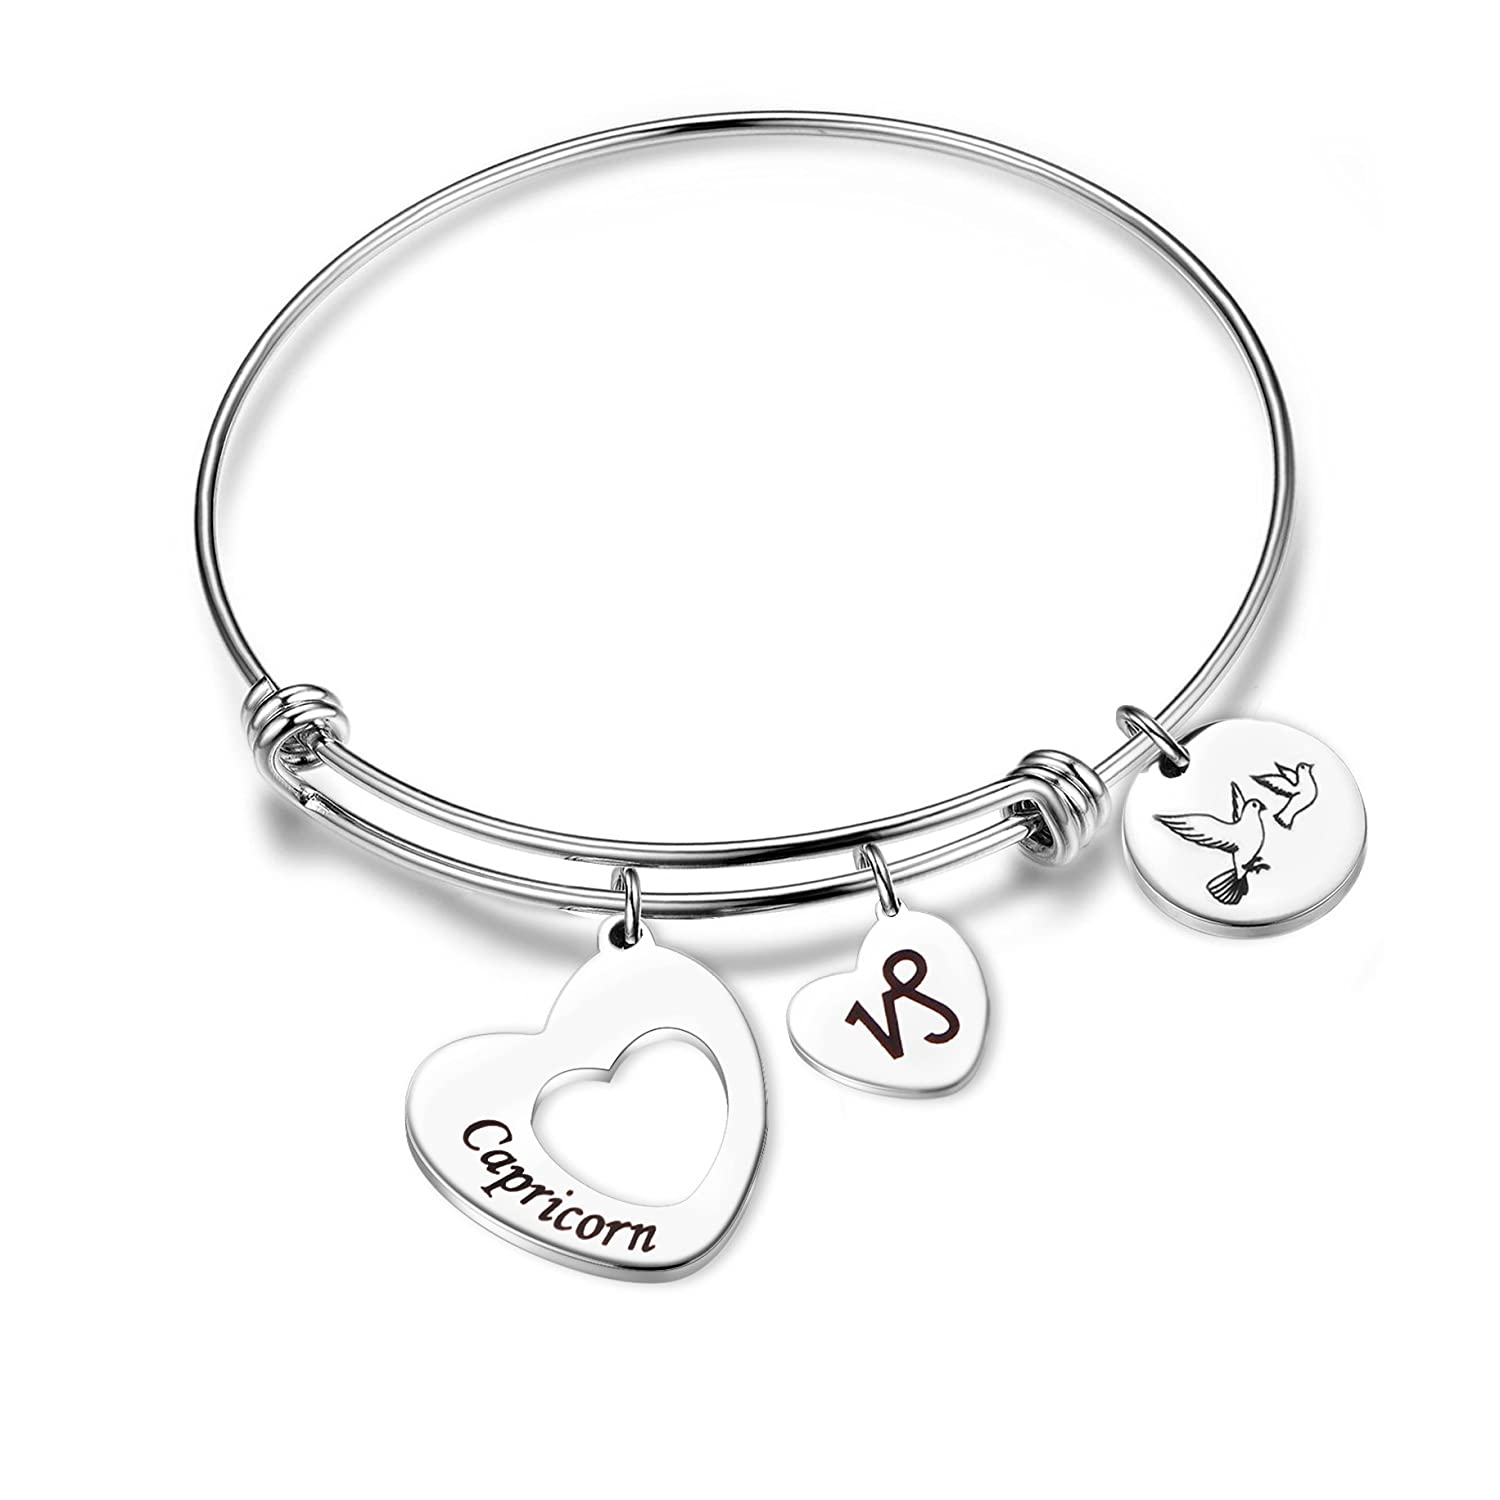 MAOFAED Stainless Steel Zodiac Sign Constellation bracelet for Women Girl Gifts MF-17BR0404